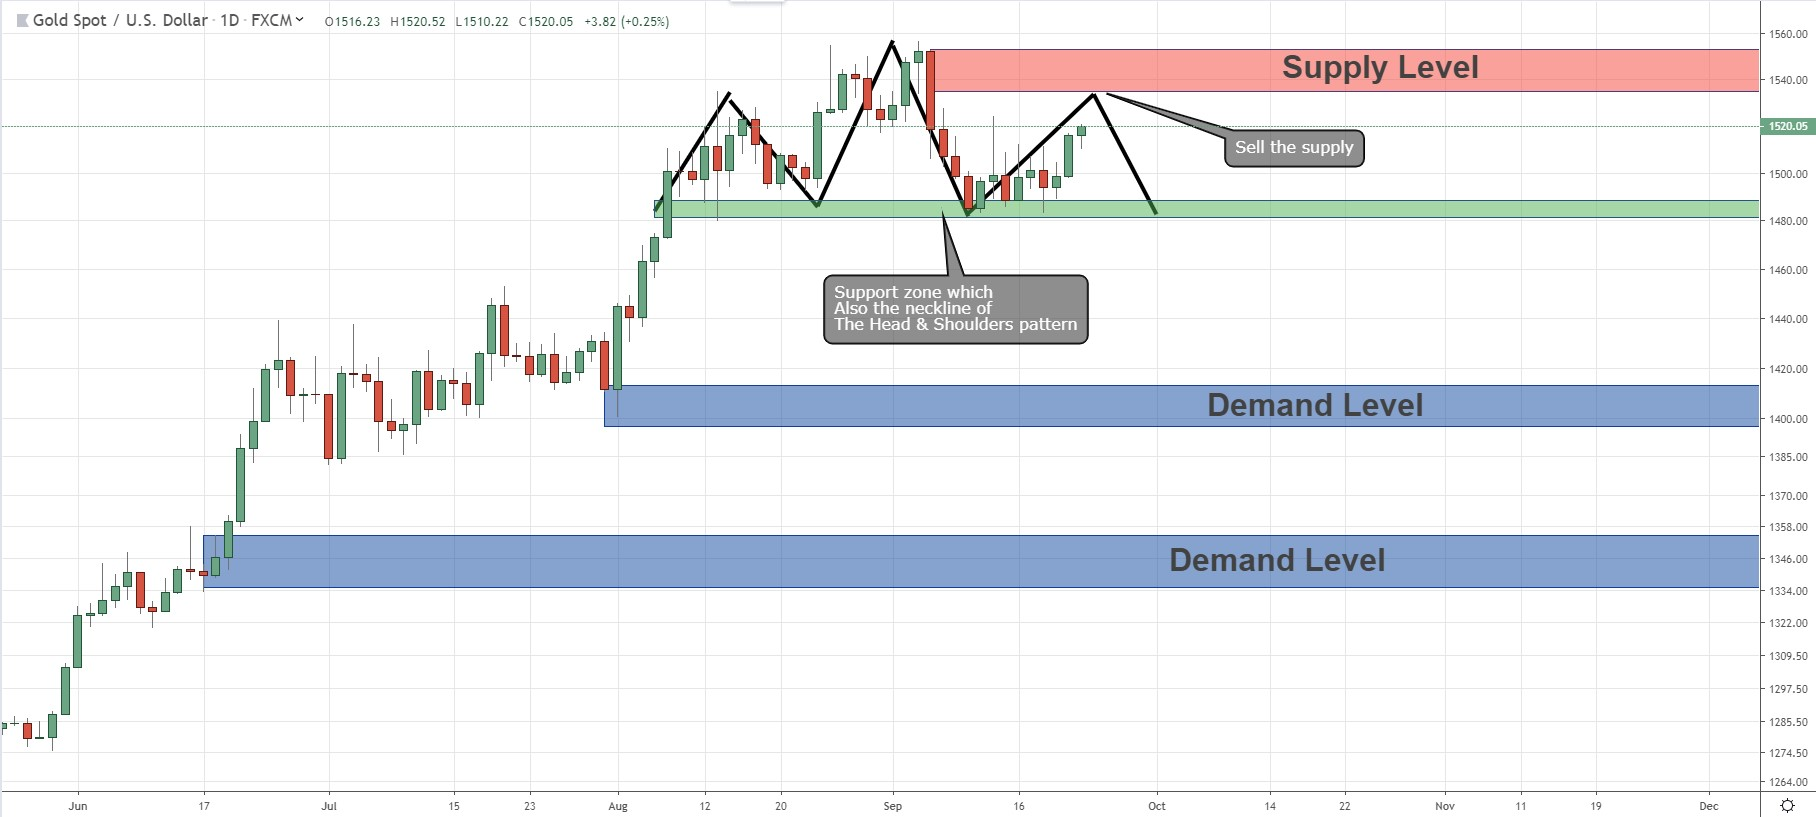 Key Levels With Price Action Analysis for GOLD.